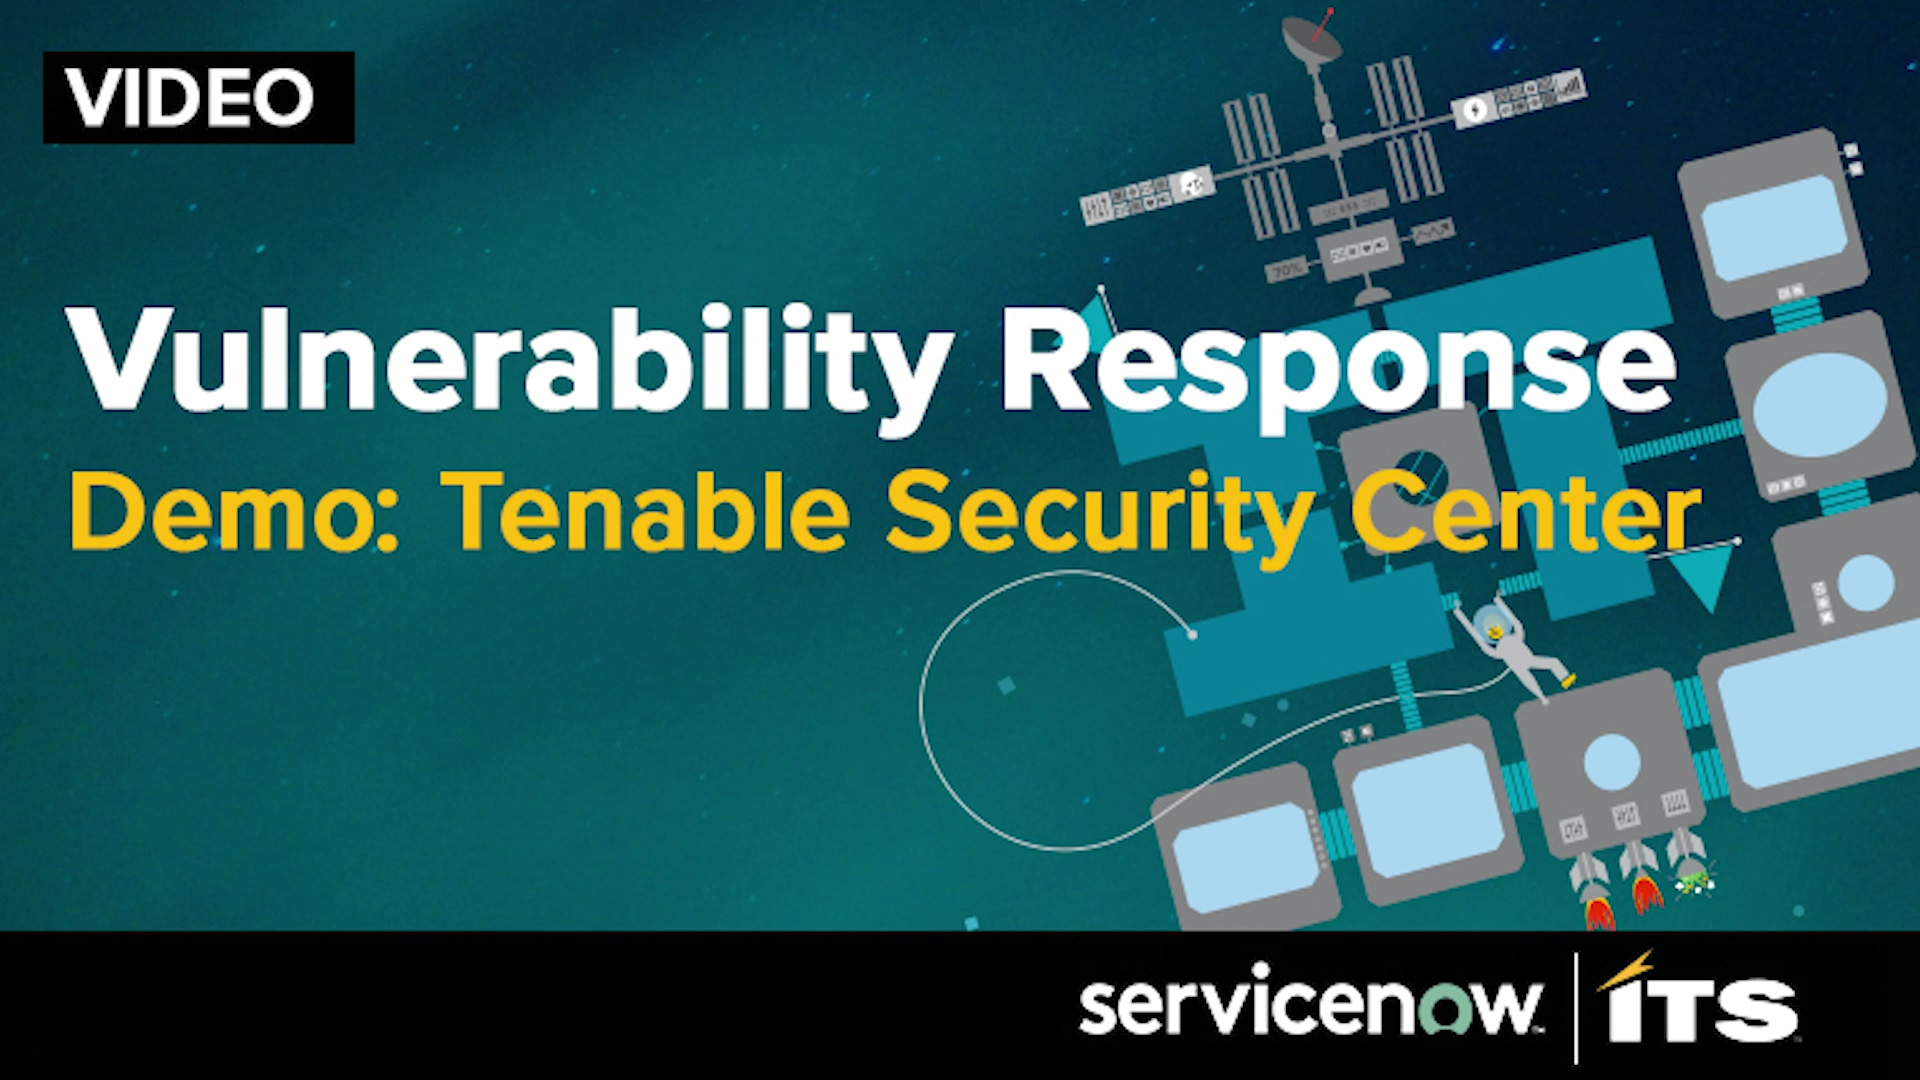 Vulnerabiltiy Response - Tenable Security Center Demo